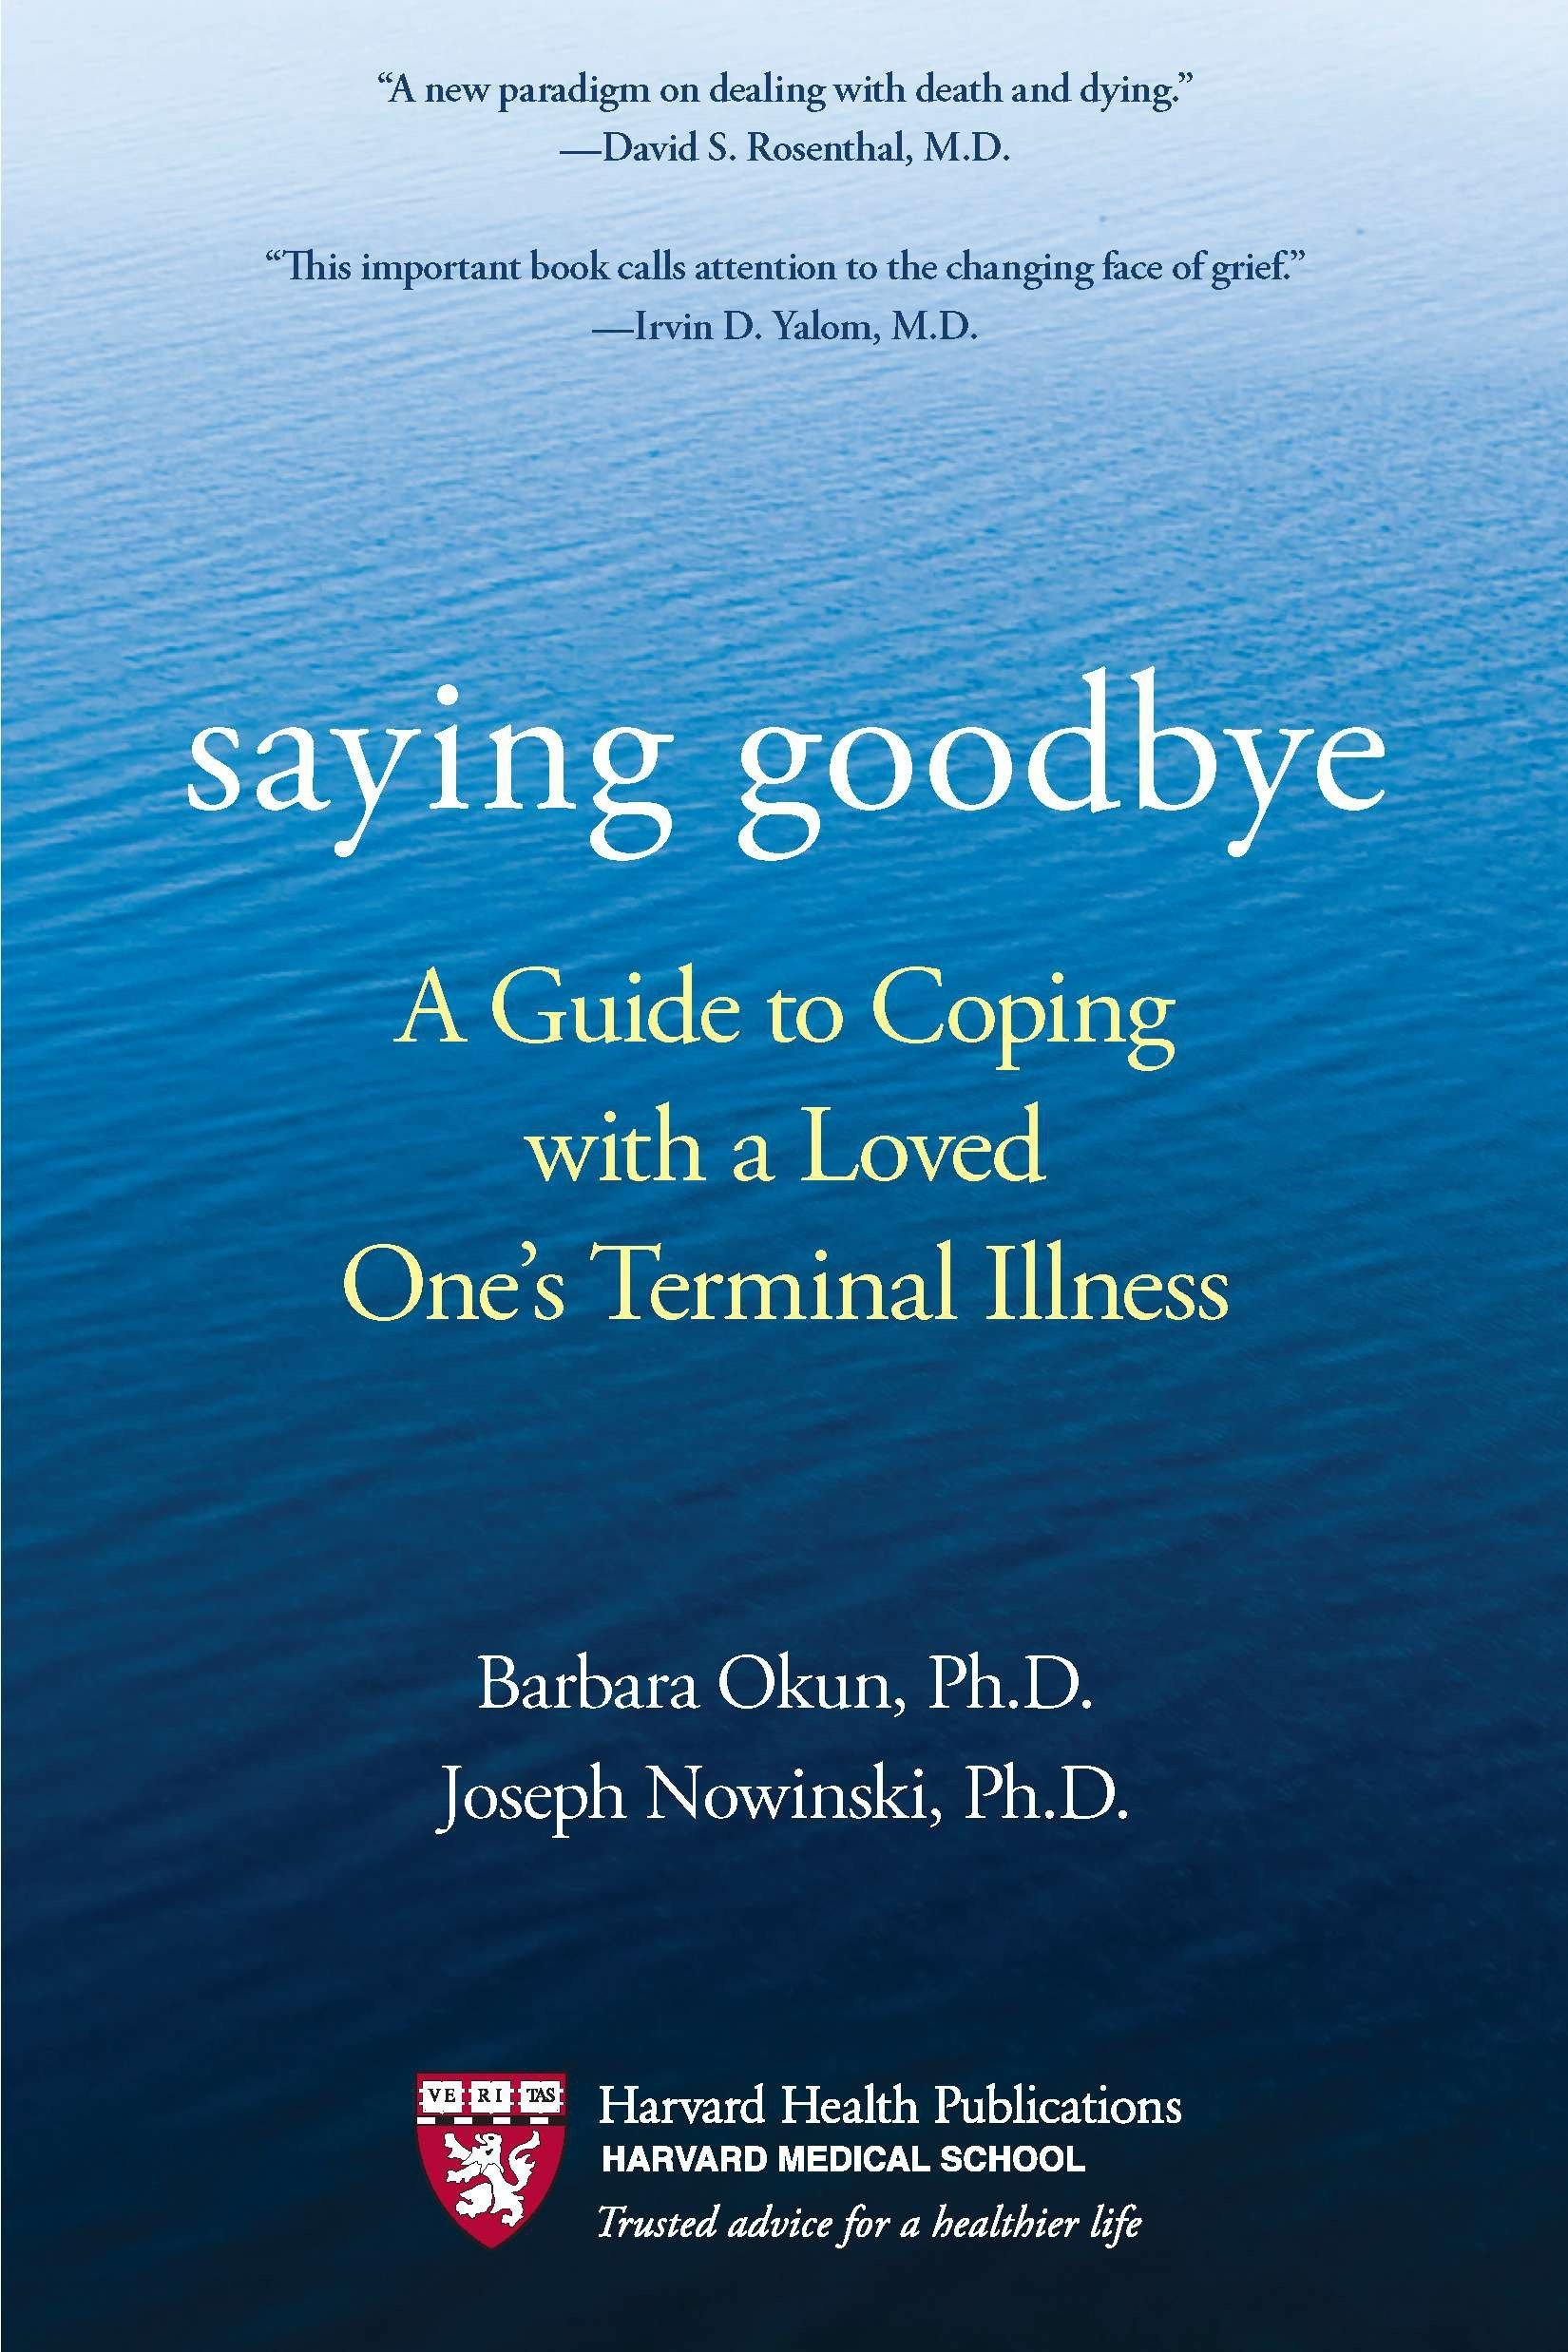 saying goodbye a guide to coping with a loved one s terminal